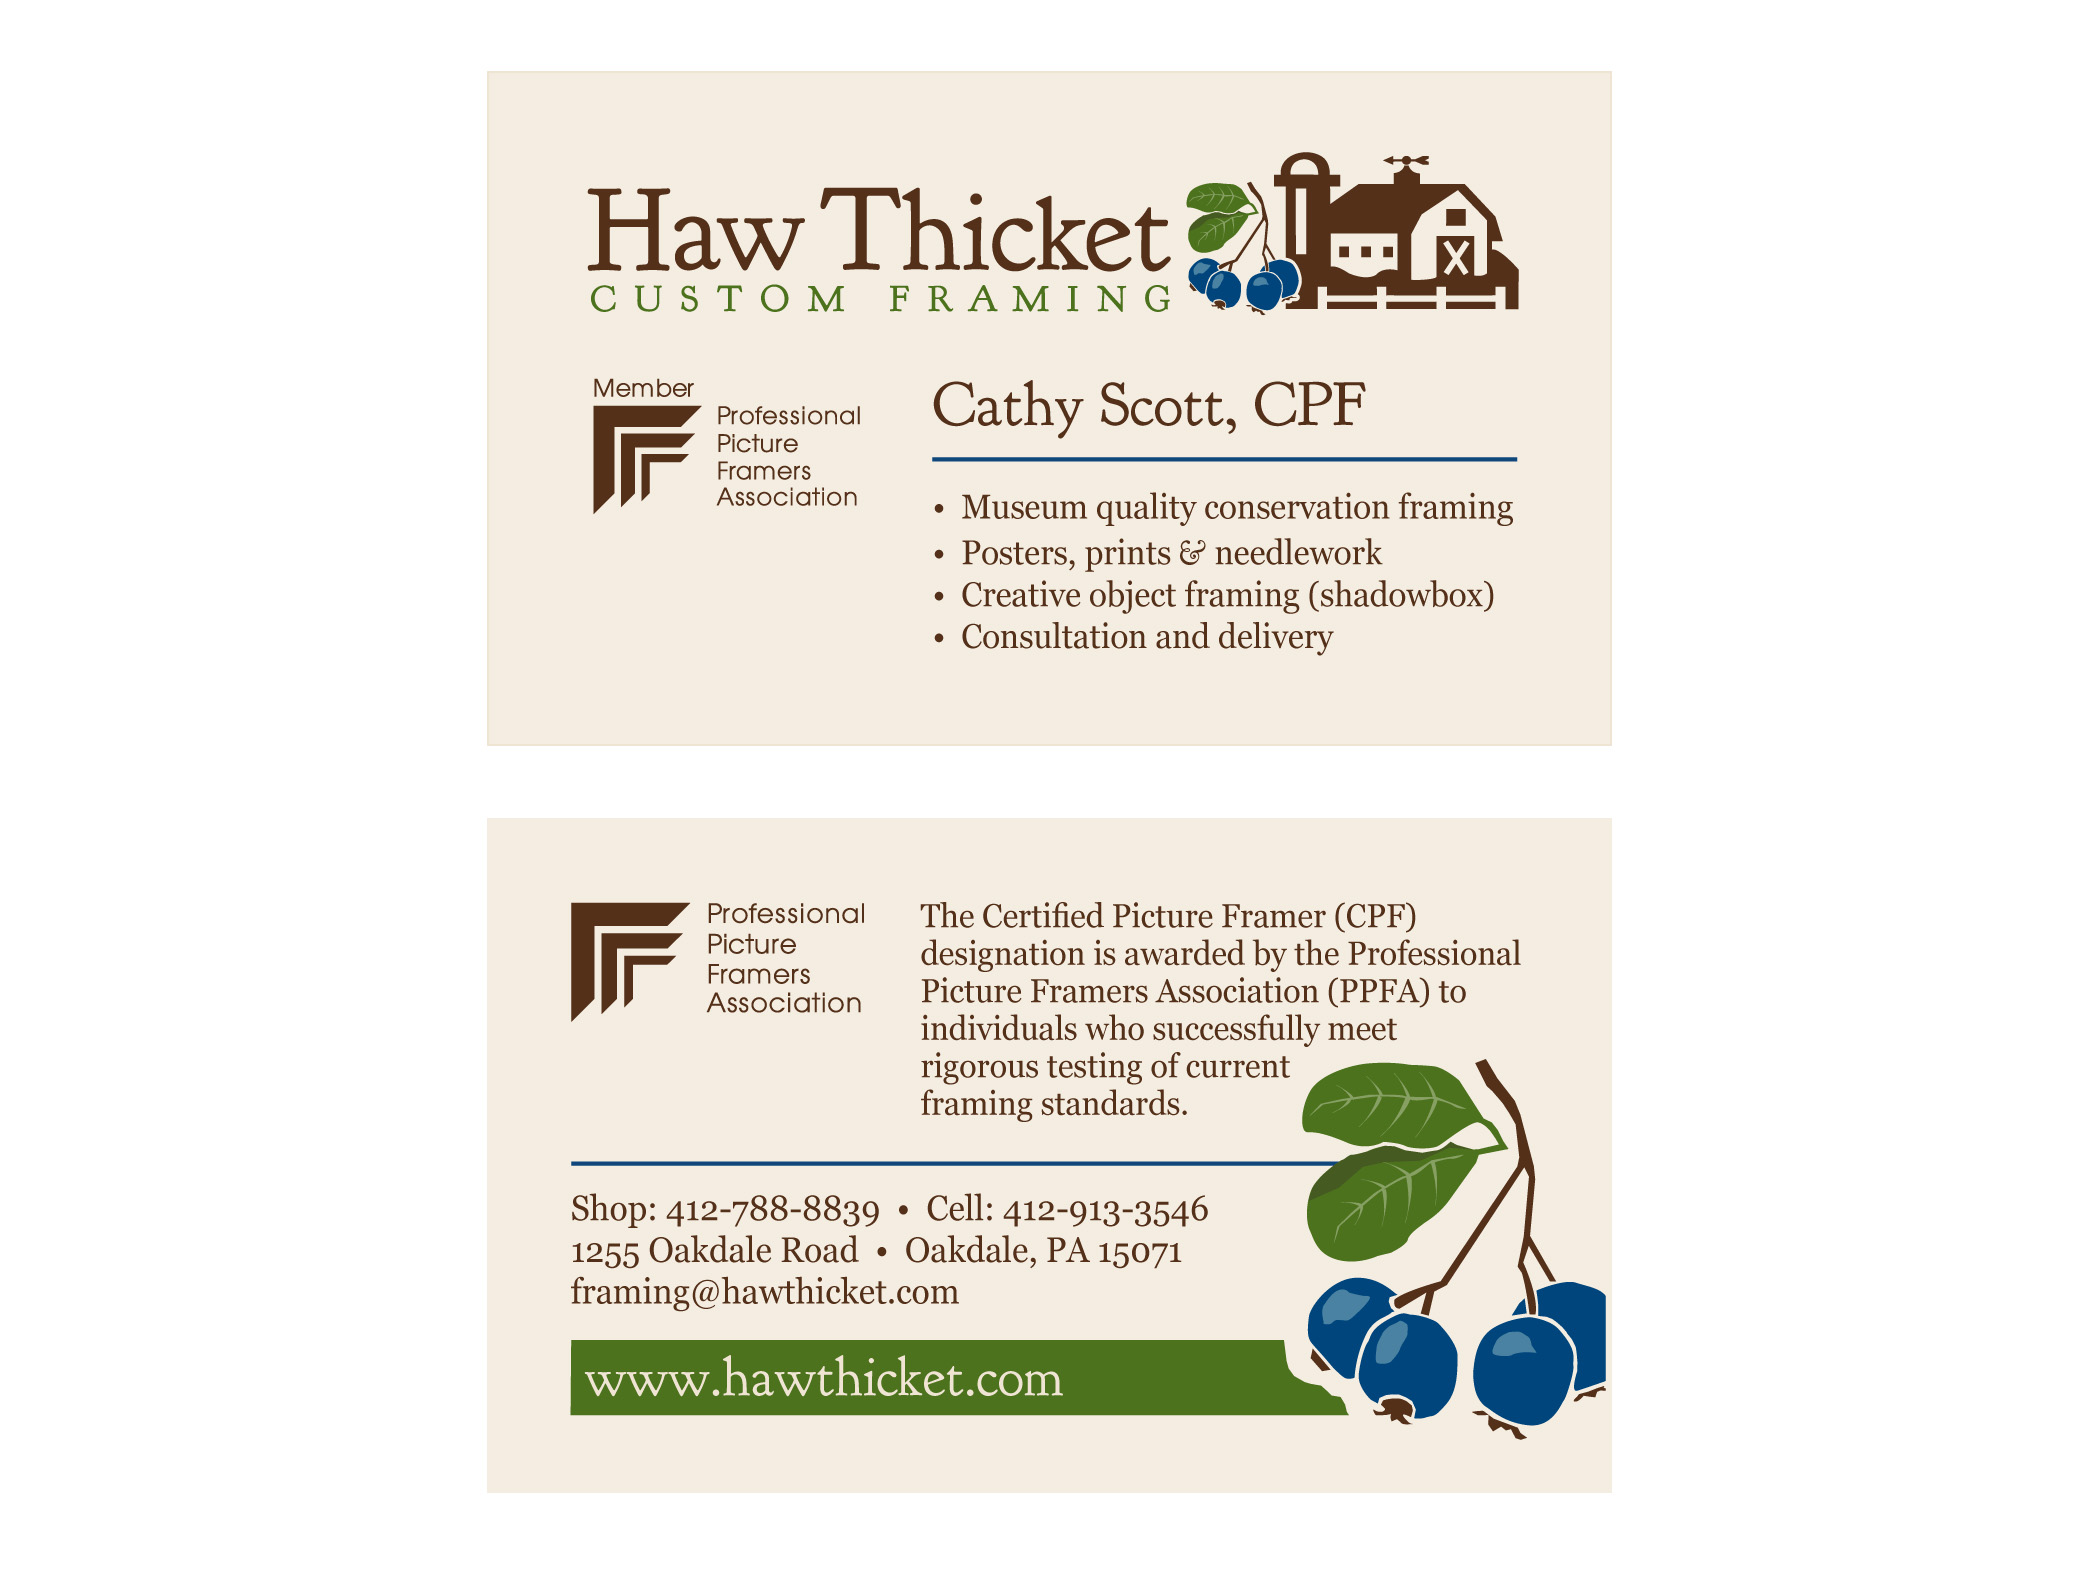 HAW THICKET BUSINESS CARD.JPG